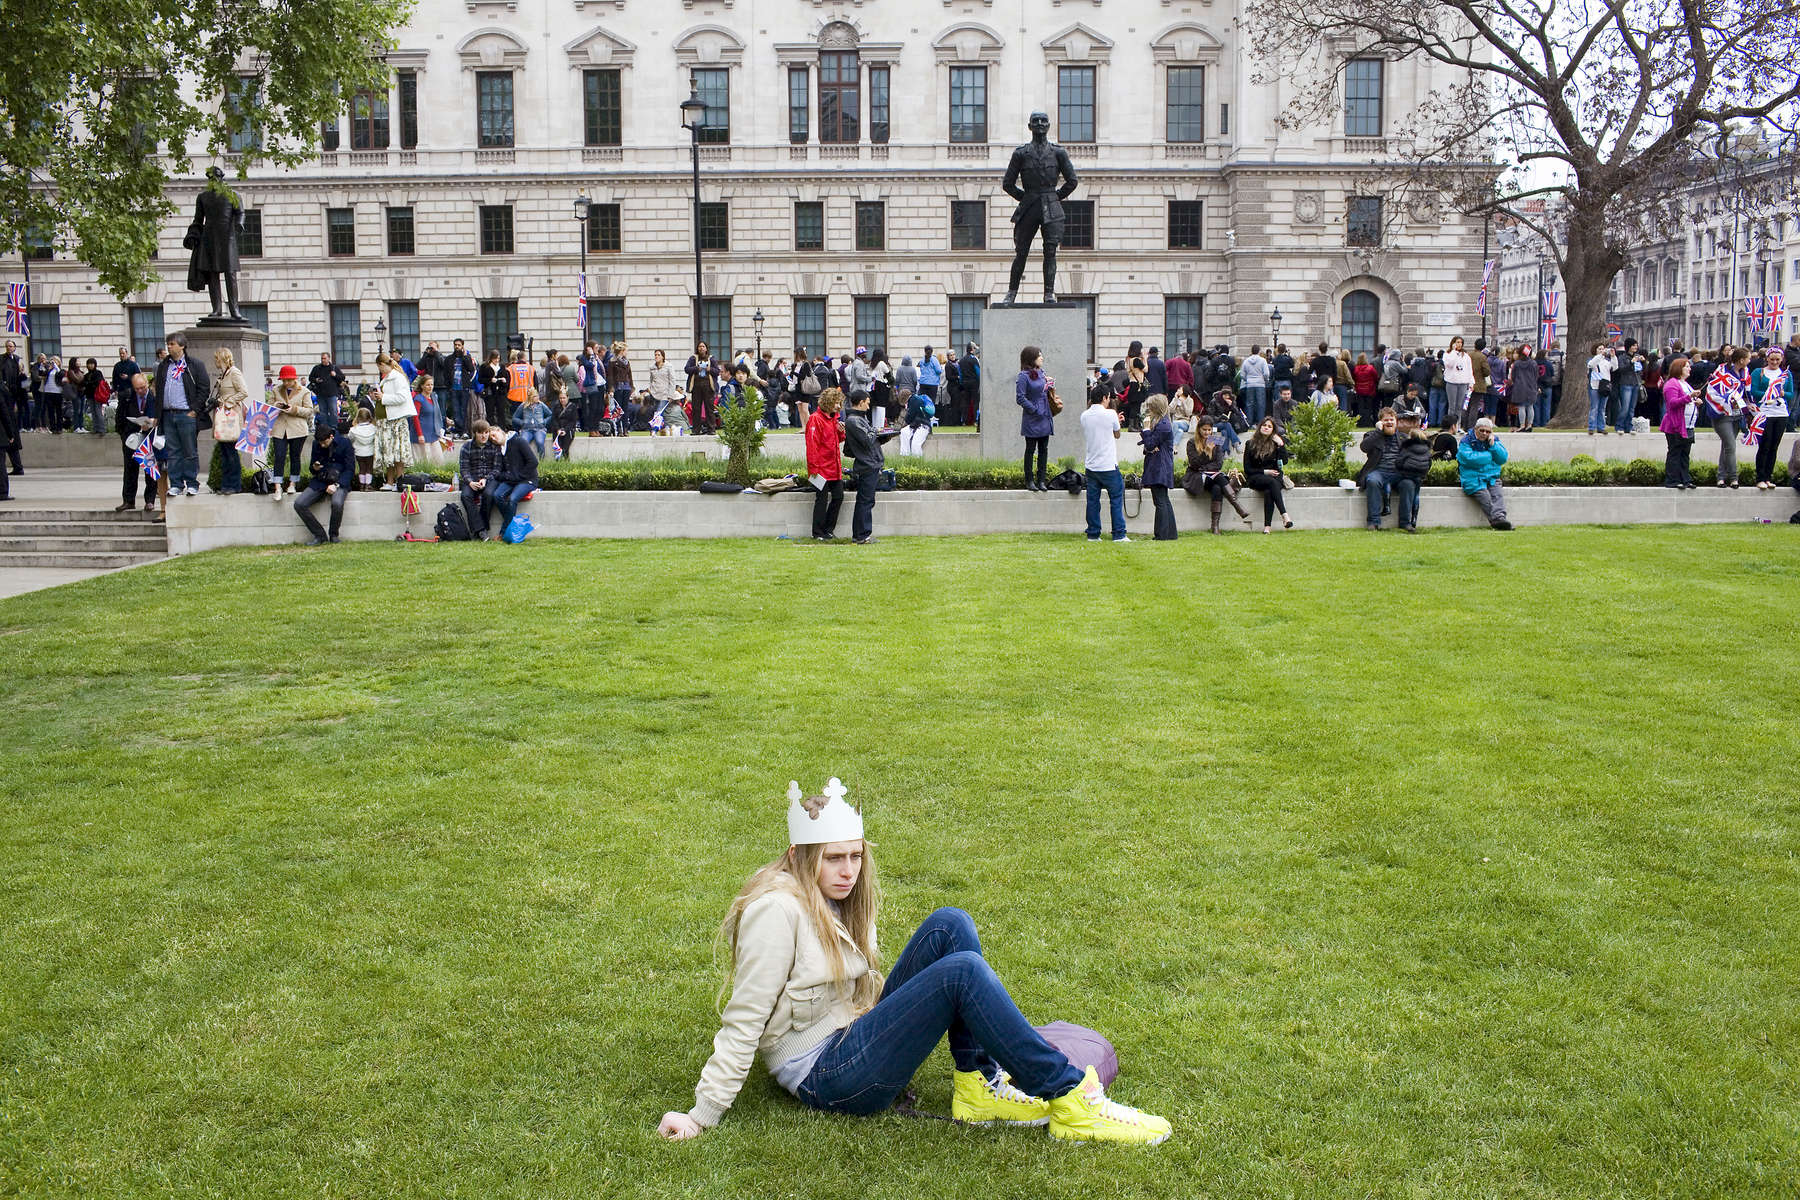 21-year old Rhyll de Teglia has a moment to herself sat in Parliament Square before the wedding of Prince William and Kate Middleton.